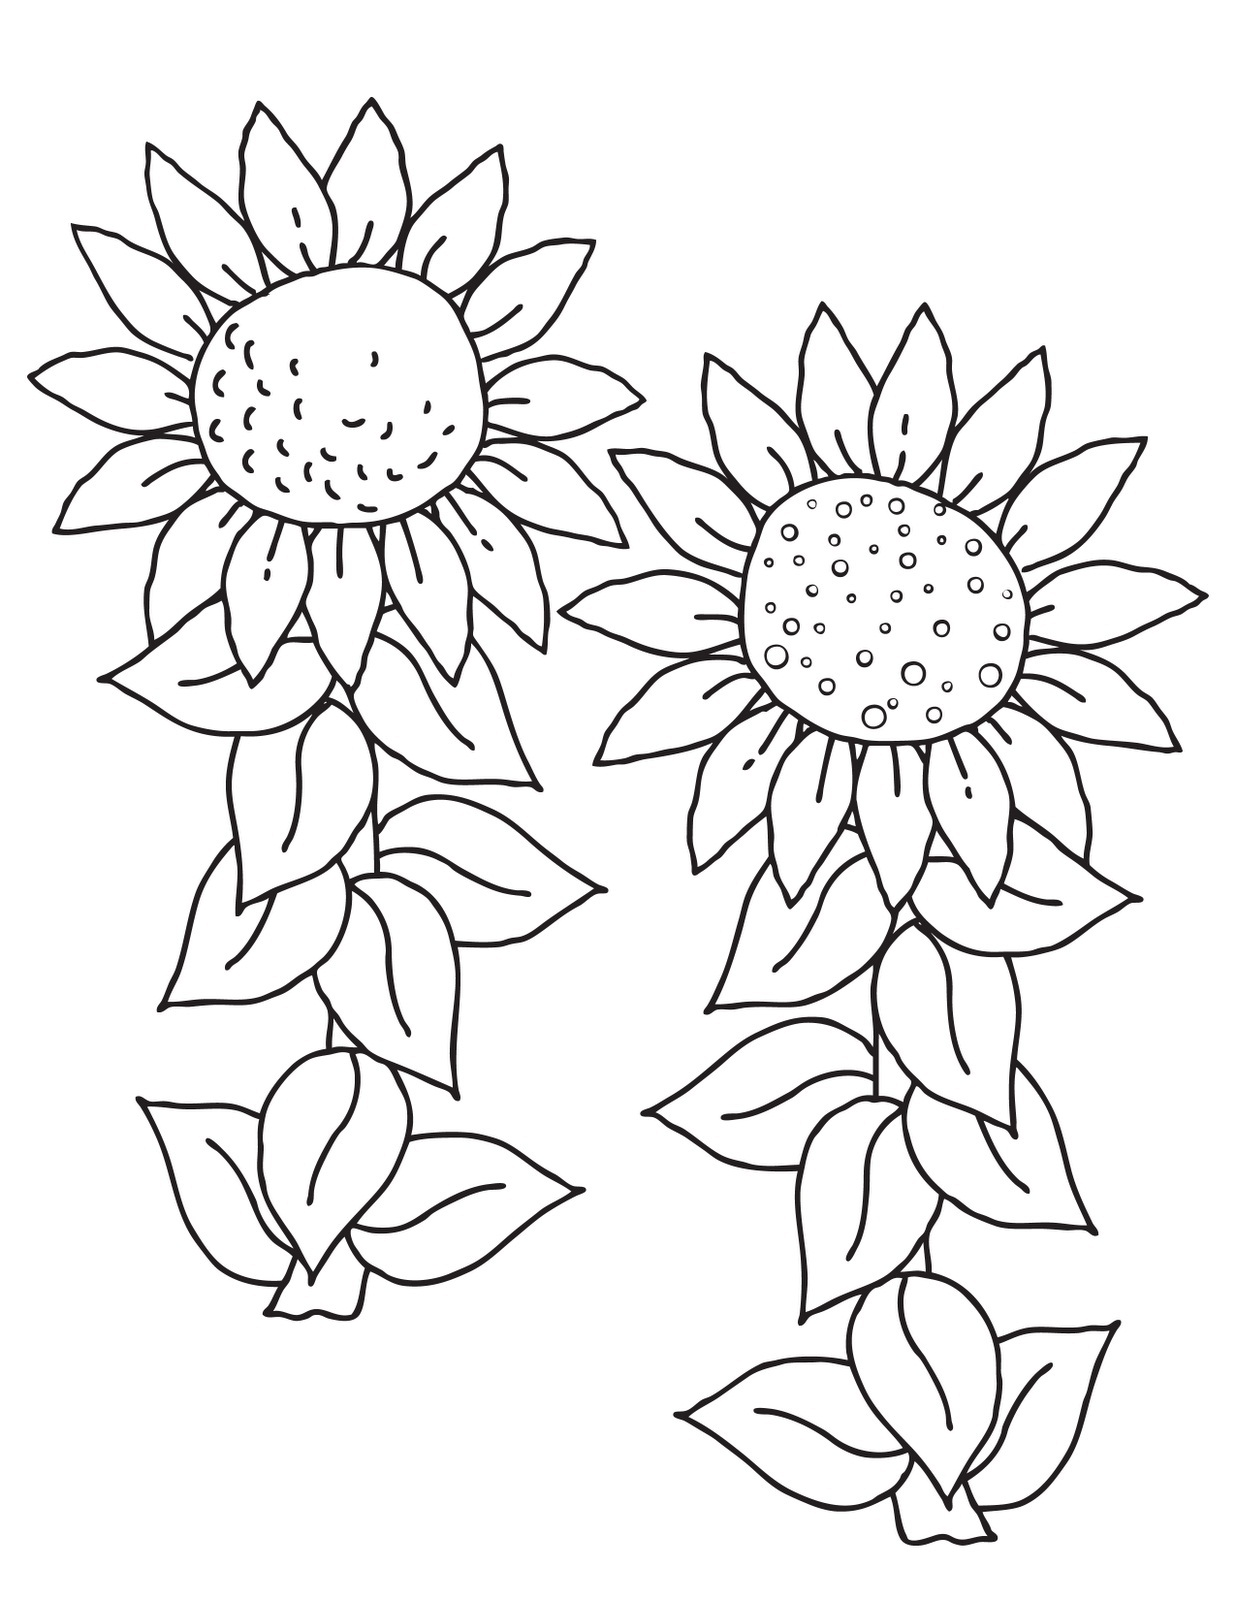 Free Plant Coloring, Download Free Clip Art, Free Clip Art on ...   1600x1236